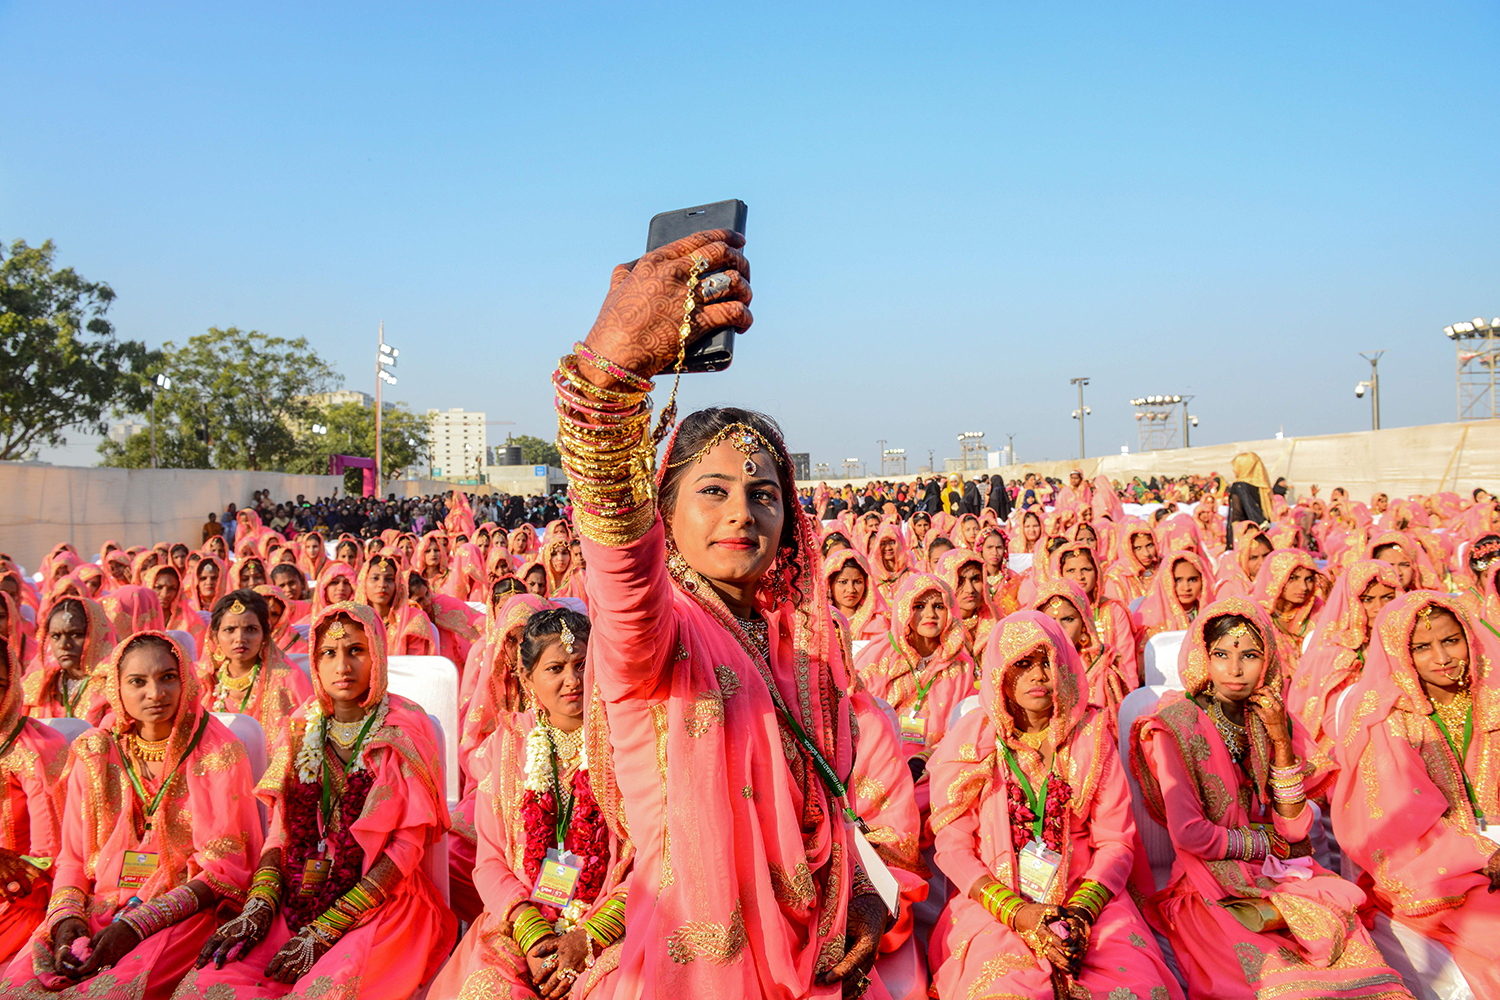 A Muslim bride takes a selfie with her cell phone as she participates in an All Religion Mass Wedding ceremony at Sabarmati Riverfront in Ahmedabad, India, on Feb. 8. SAM PANTHAKY/AFP via Getty Images